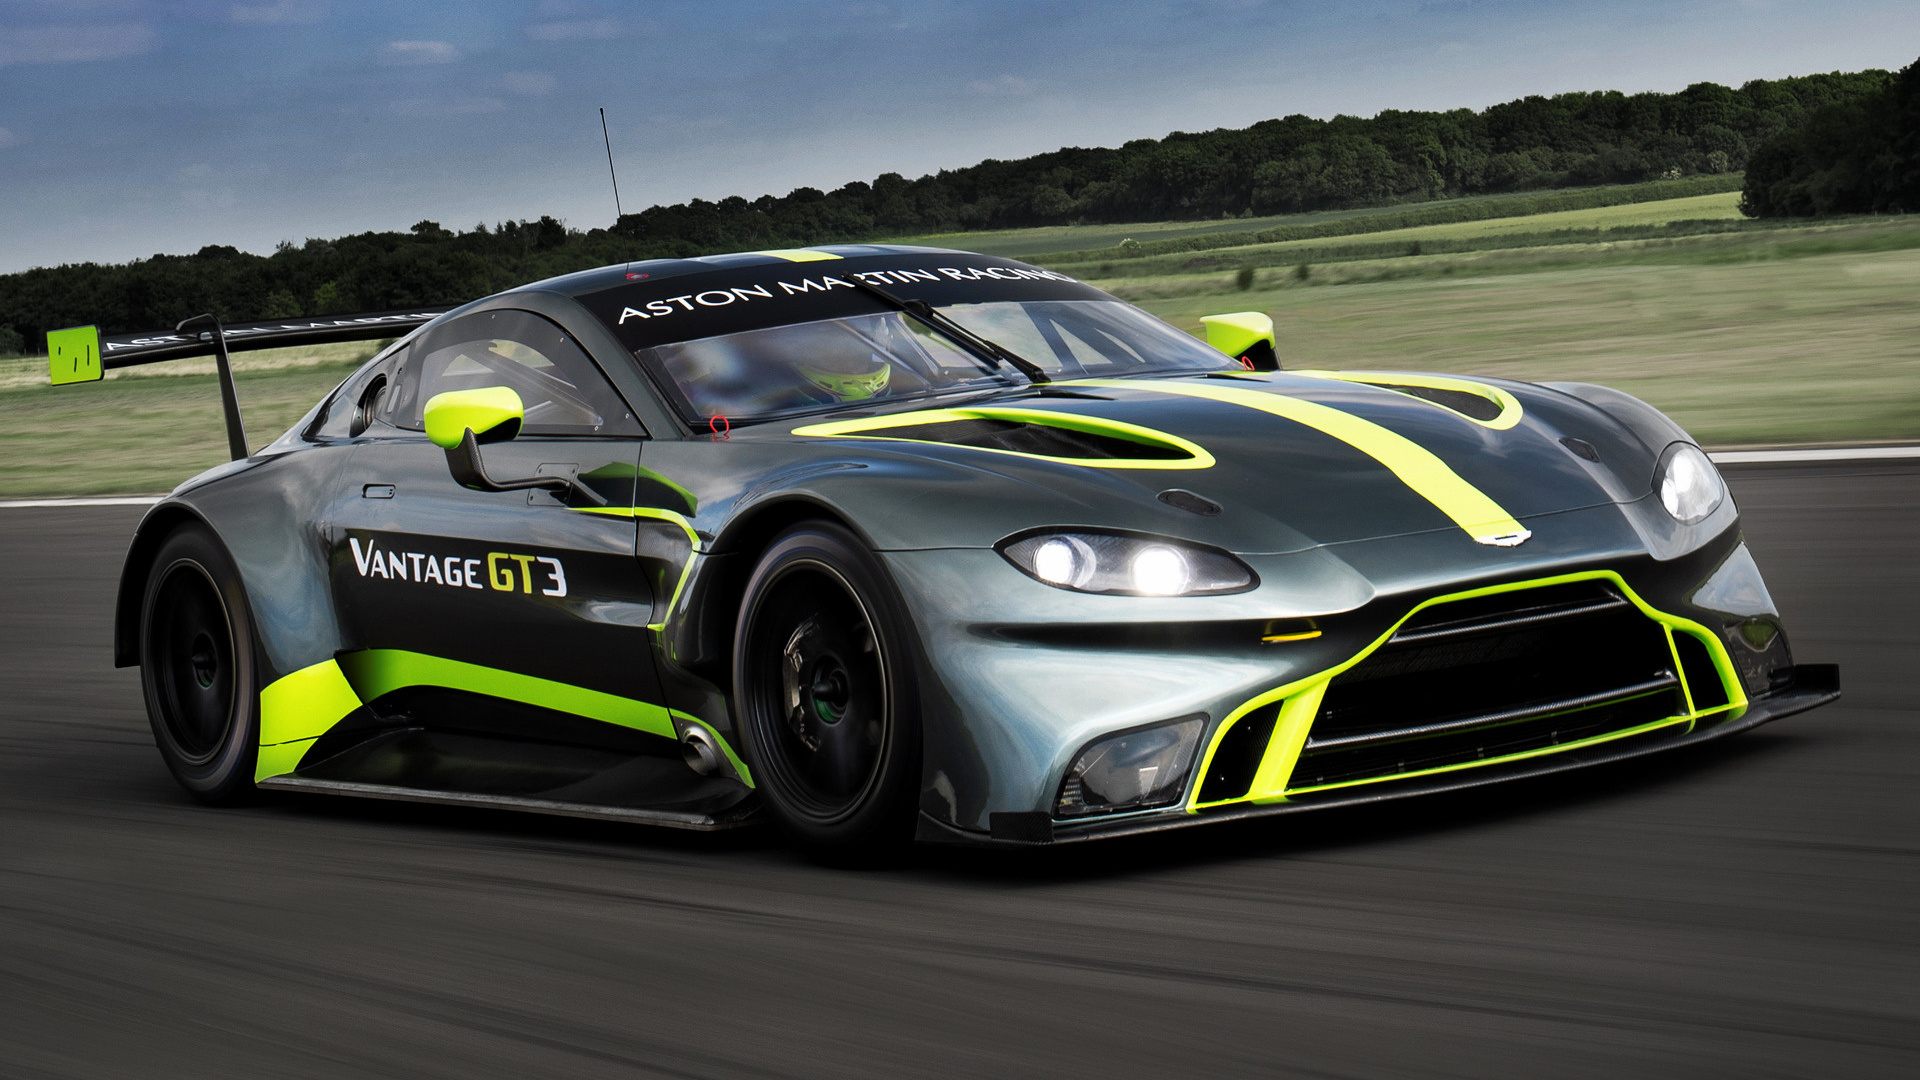 2018 Aston Martin Vantage Gt3 Wallpapers And Hd Images Car Pixel